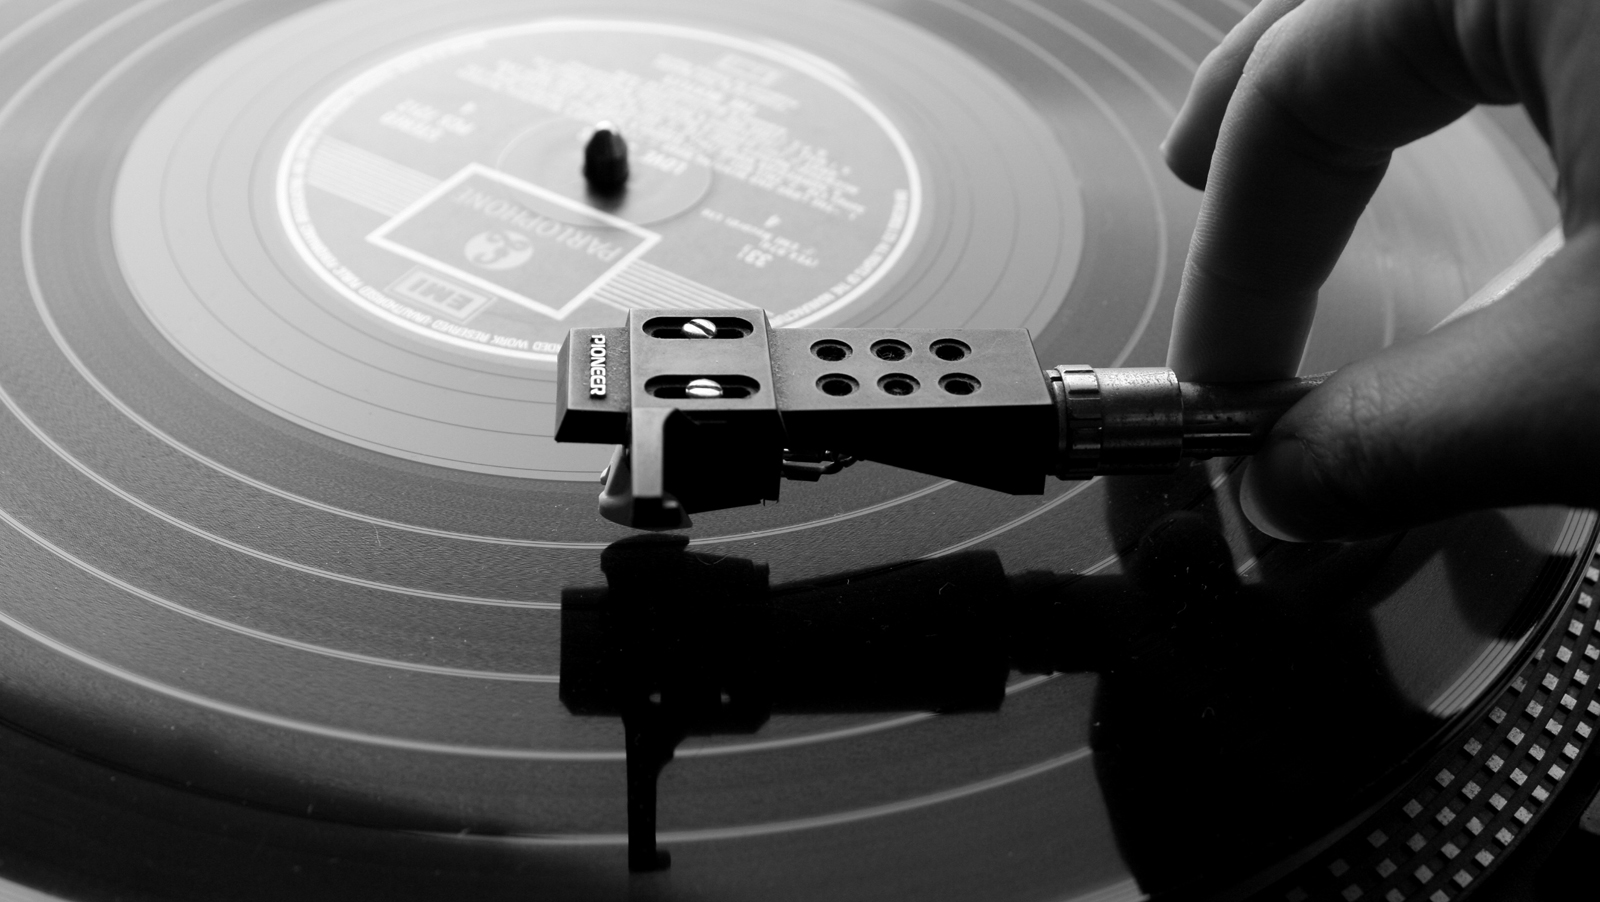 http://3.bp.blogspot.com/-X8wLj7pMbP0/Too8VODC0HI/AAAAAAAABdk/D8-bk5Dfb3g/s1600/Turntable_Record_Monochrome_Music_DJ_HD_Wallpapers_Vvallpaper.net.jpg